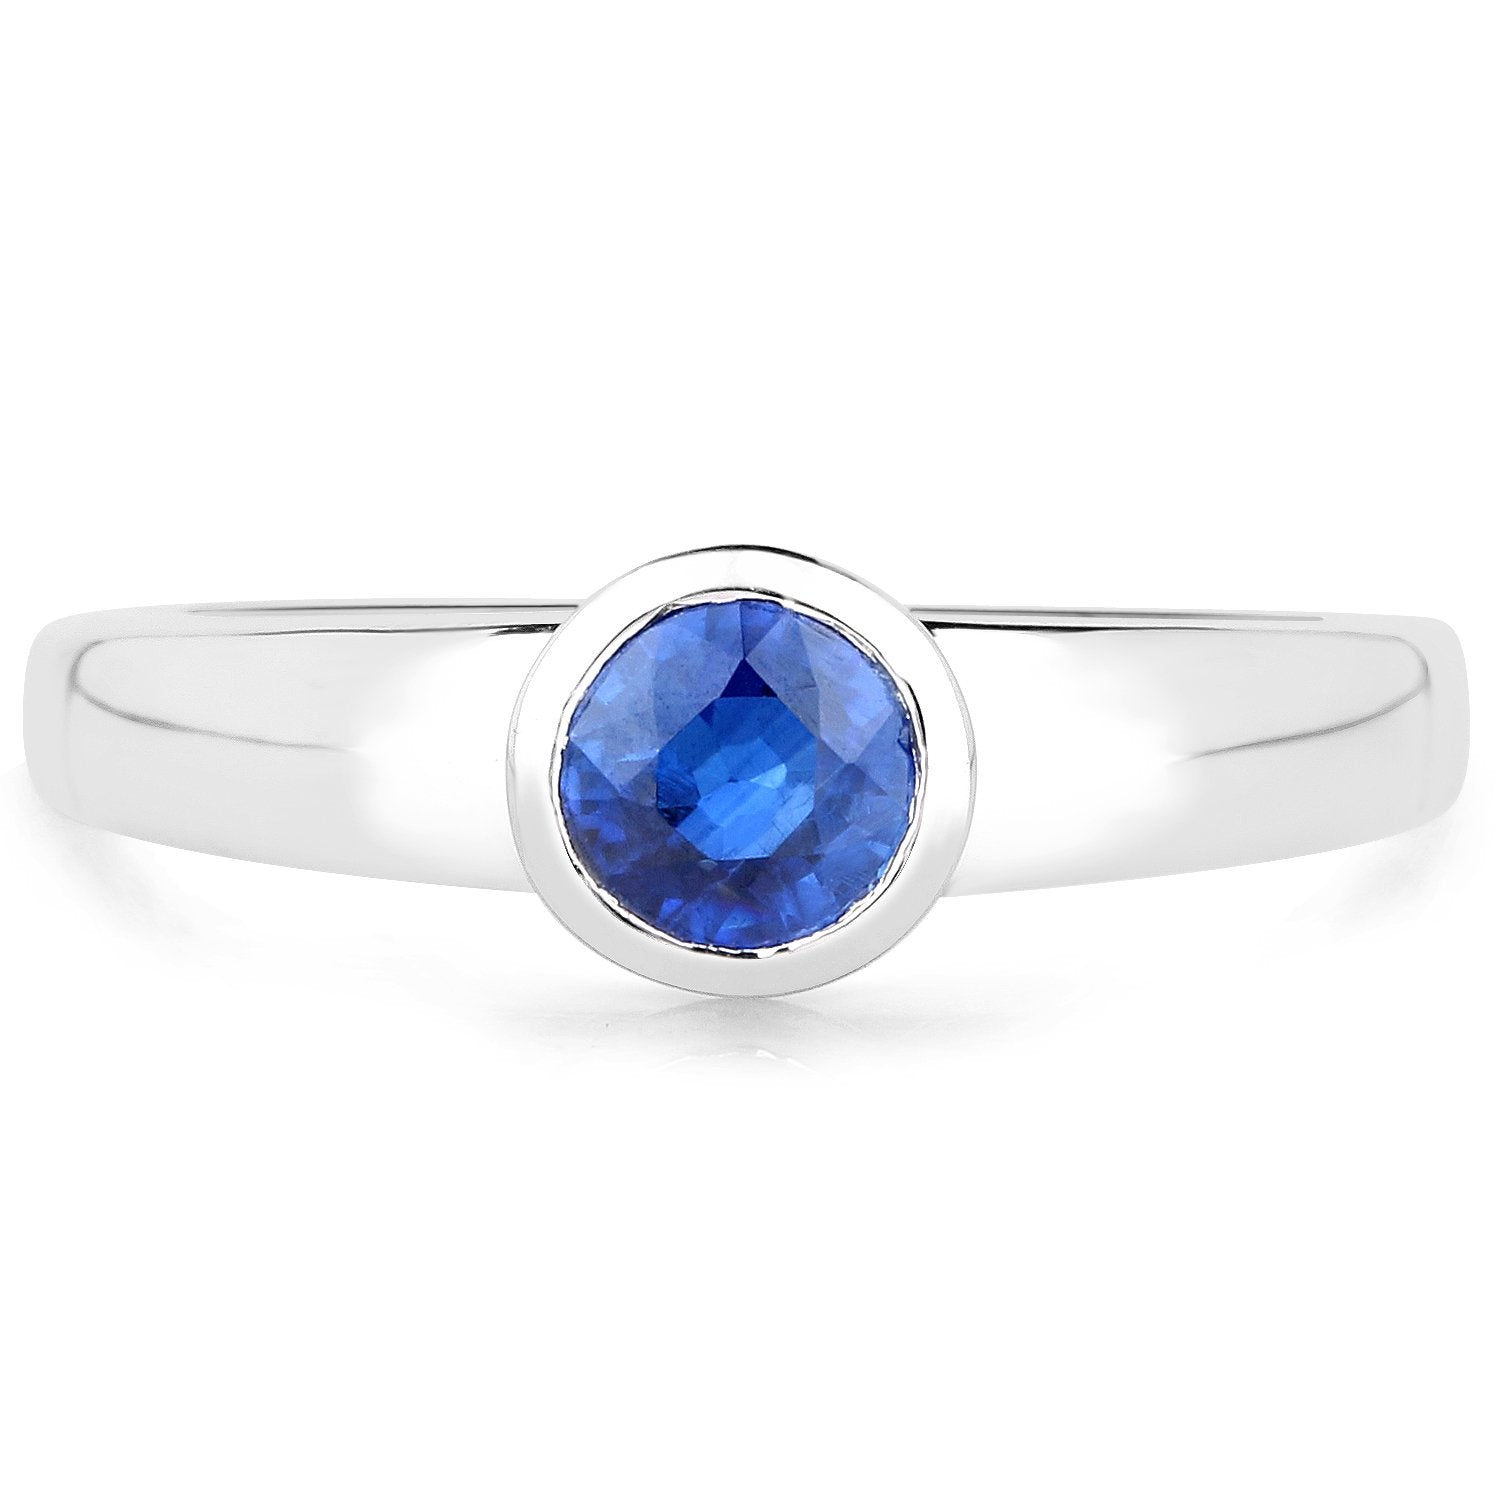 LoveHuang 0.59 Carats Genuine Kyanite Round Bezel Ring Solid .925 Sterling Silver With Rhodium Plating